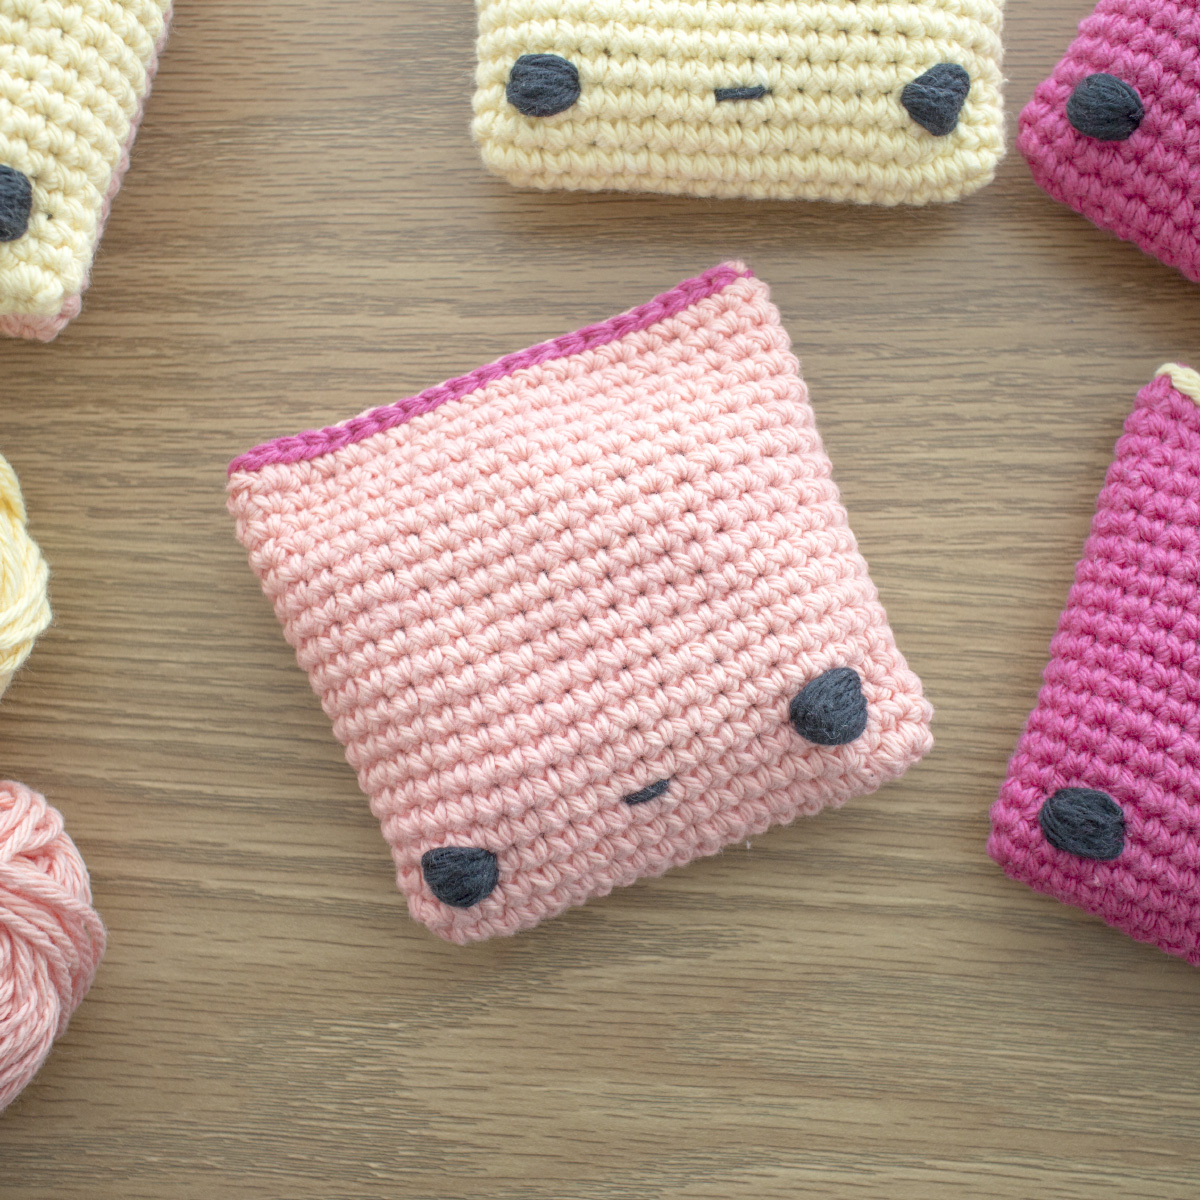 Mini Bean Bags Free Crochet Pattern